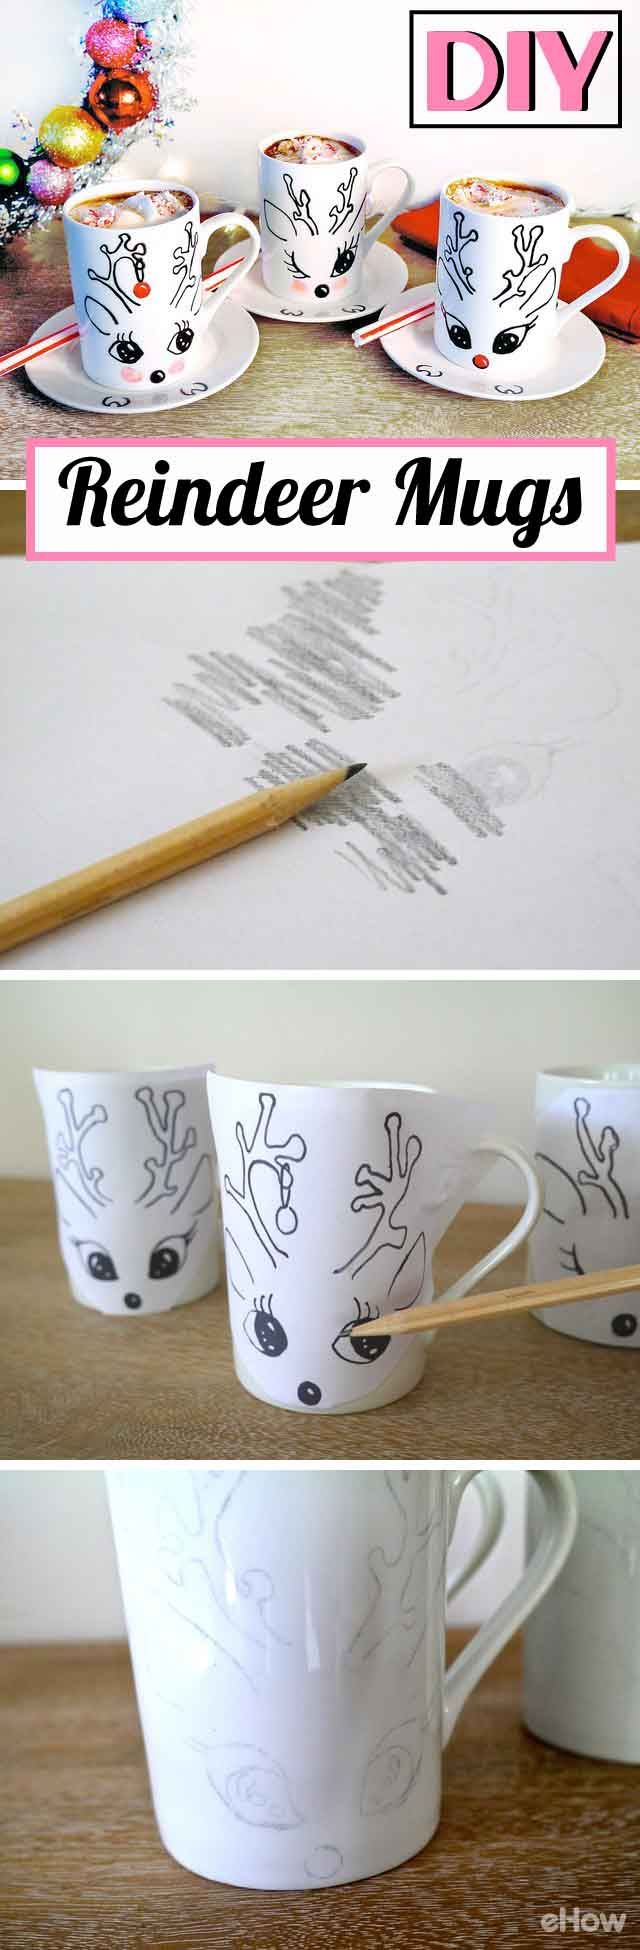 We cannot get over how adorable and easy these DIY reindeer mugs are! Free reindeer template you can download from the site. They are the perfect special gift to give anyone!  Hand painted mugs with matching saucers are just about as cute as it can get!  http://www.ehow.com/how_12343008_diy-holiday-reindeer-mugs.html?utm_source=pinterest.com&utm_medium=referral&utm_content=freestyle&utm_campaign=fanpage